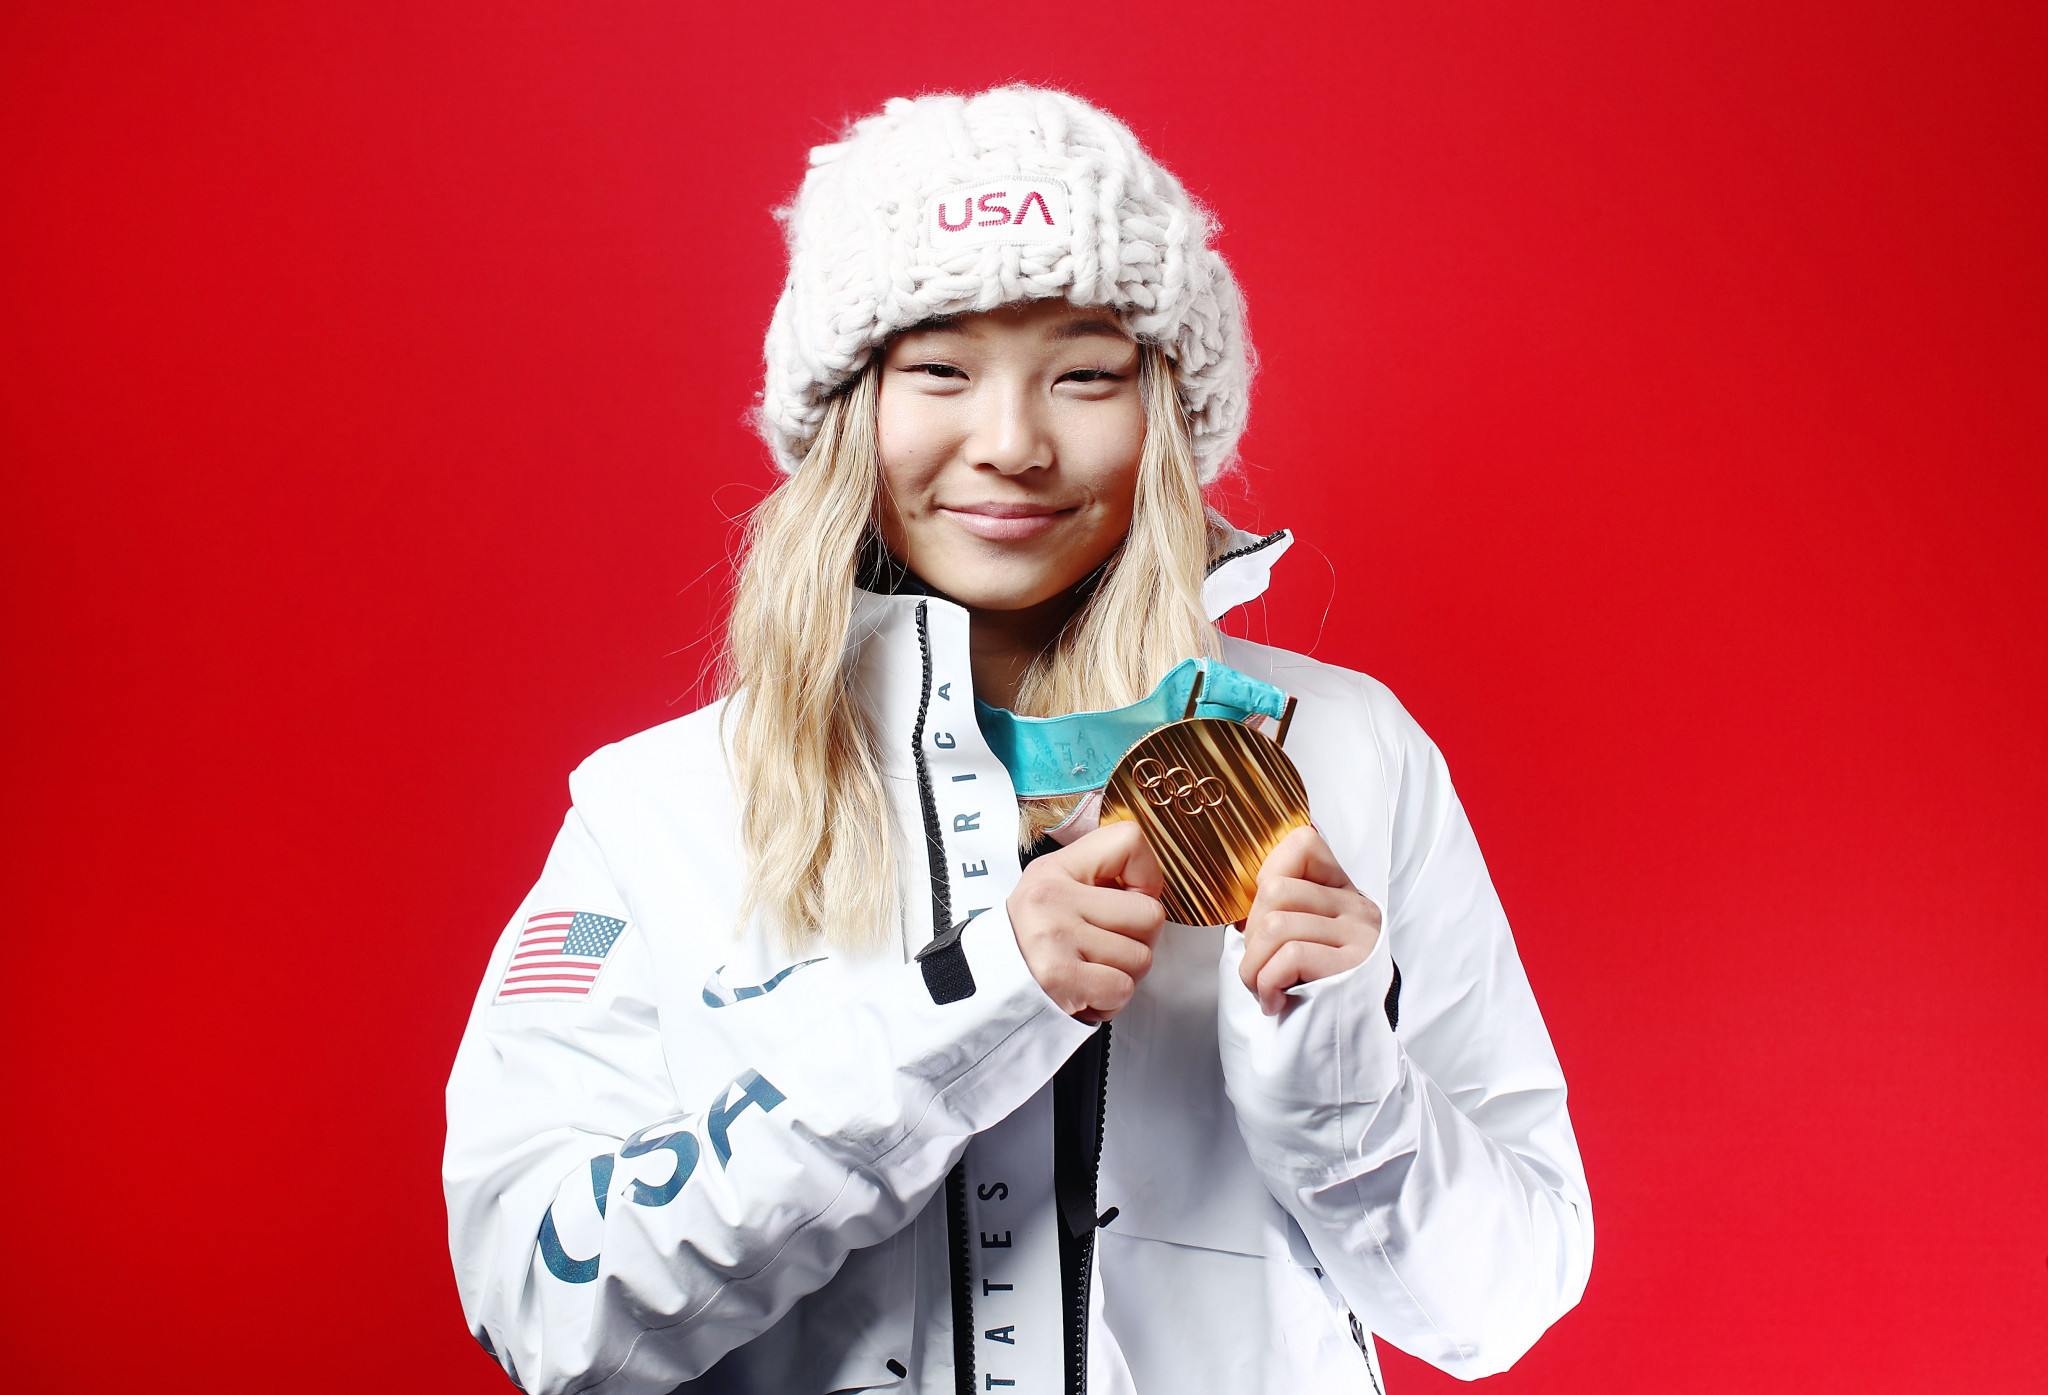 Olympic champion Kim makes history by landing snowboard trick